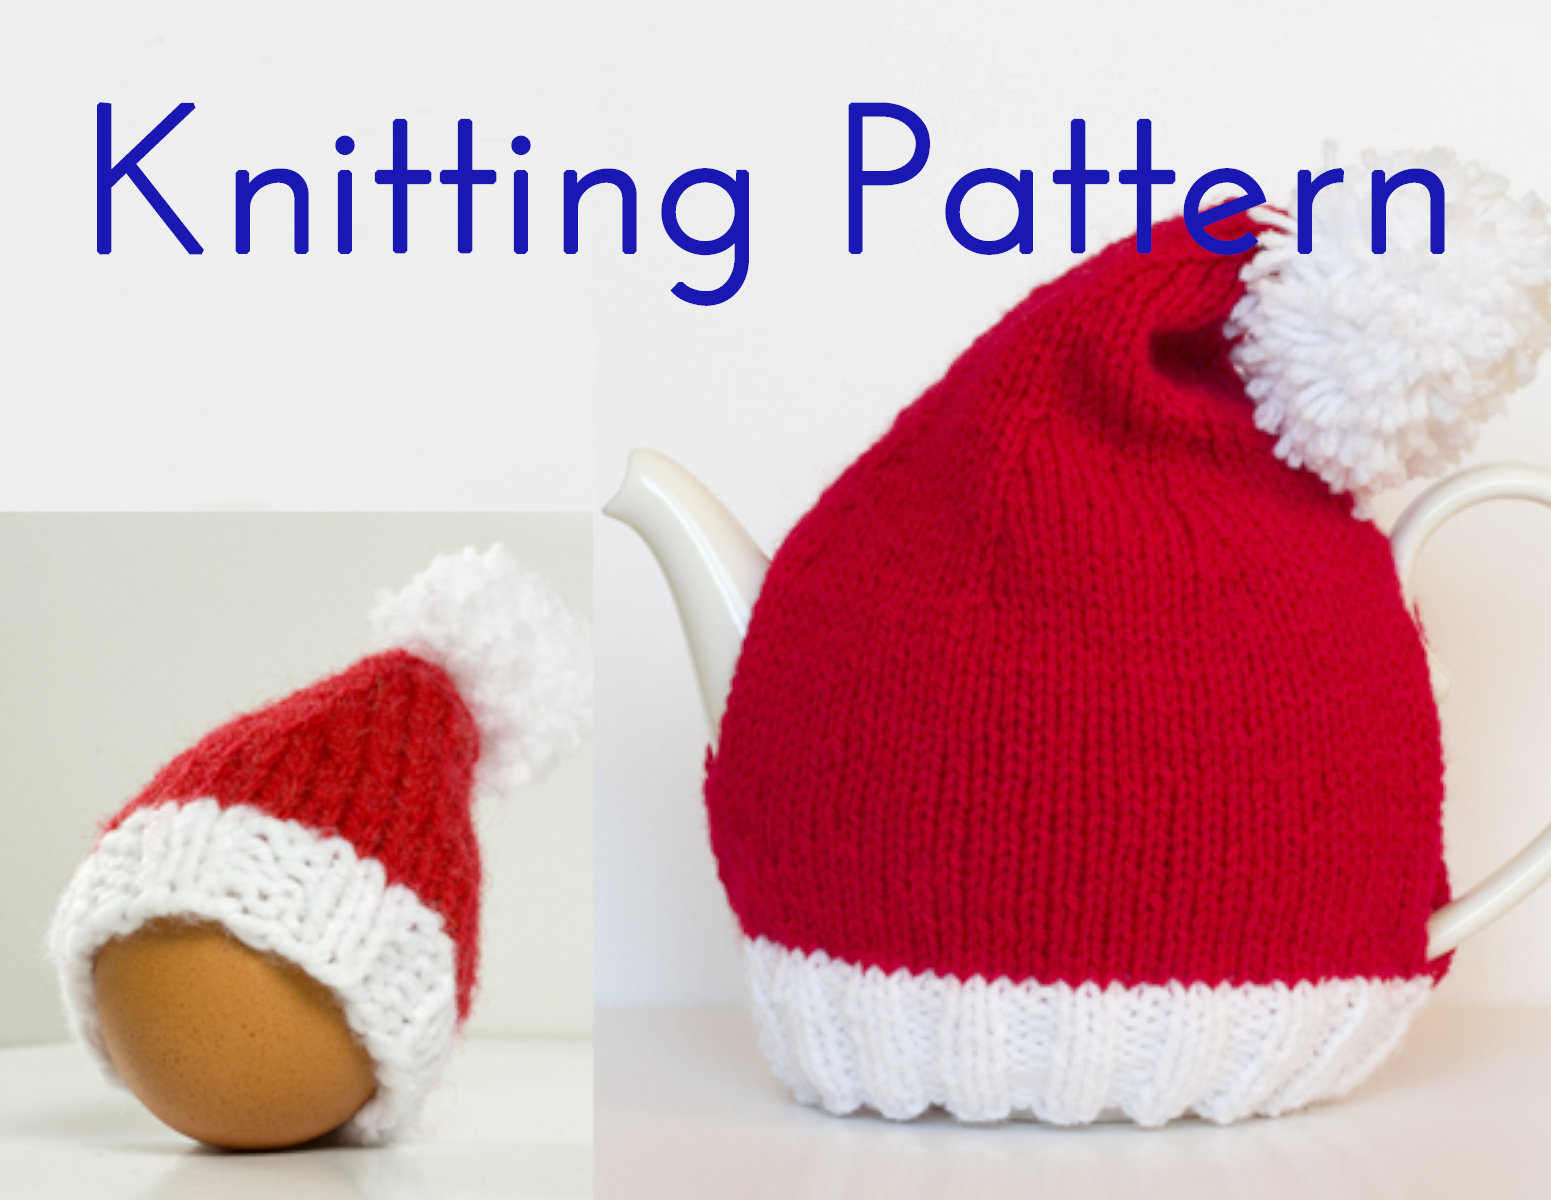 Santa Hat Knitting Pattern Pdf Knitting Pattern Santa Hat Tea Egg Cozies Diy Knit Tea Cosy Christmas Table Decoration Knitting Instructions Aranworsted Weight